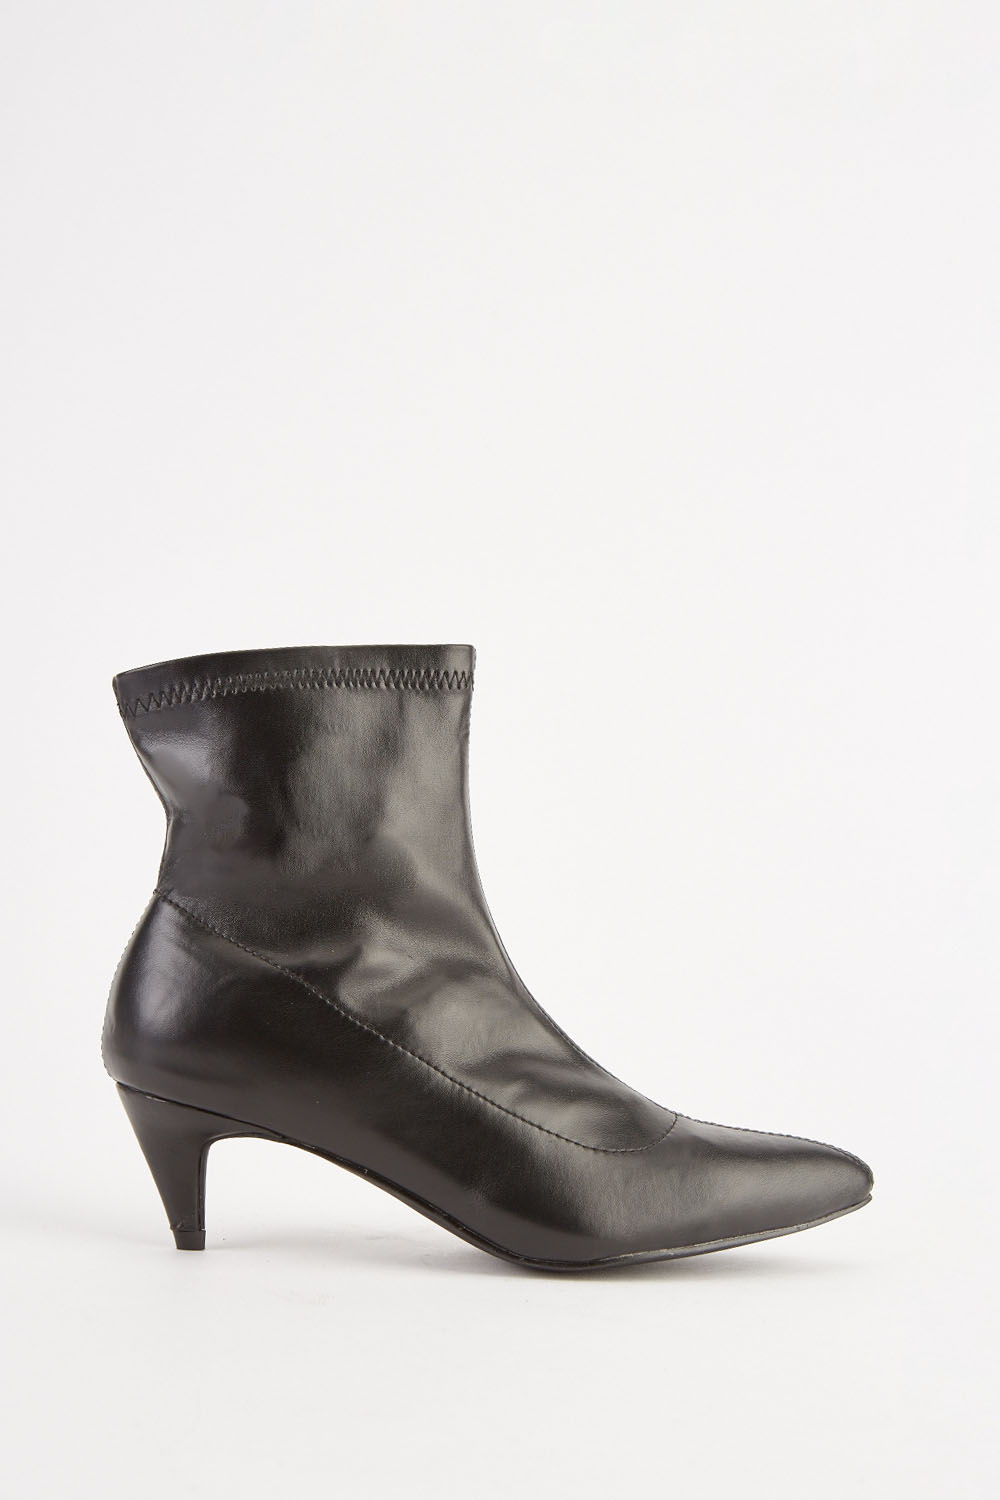 b1ab2693539 Faux Leather Kitten Heel Boots - Black - Just £5